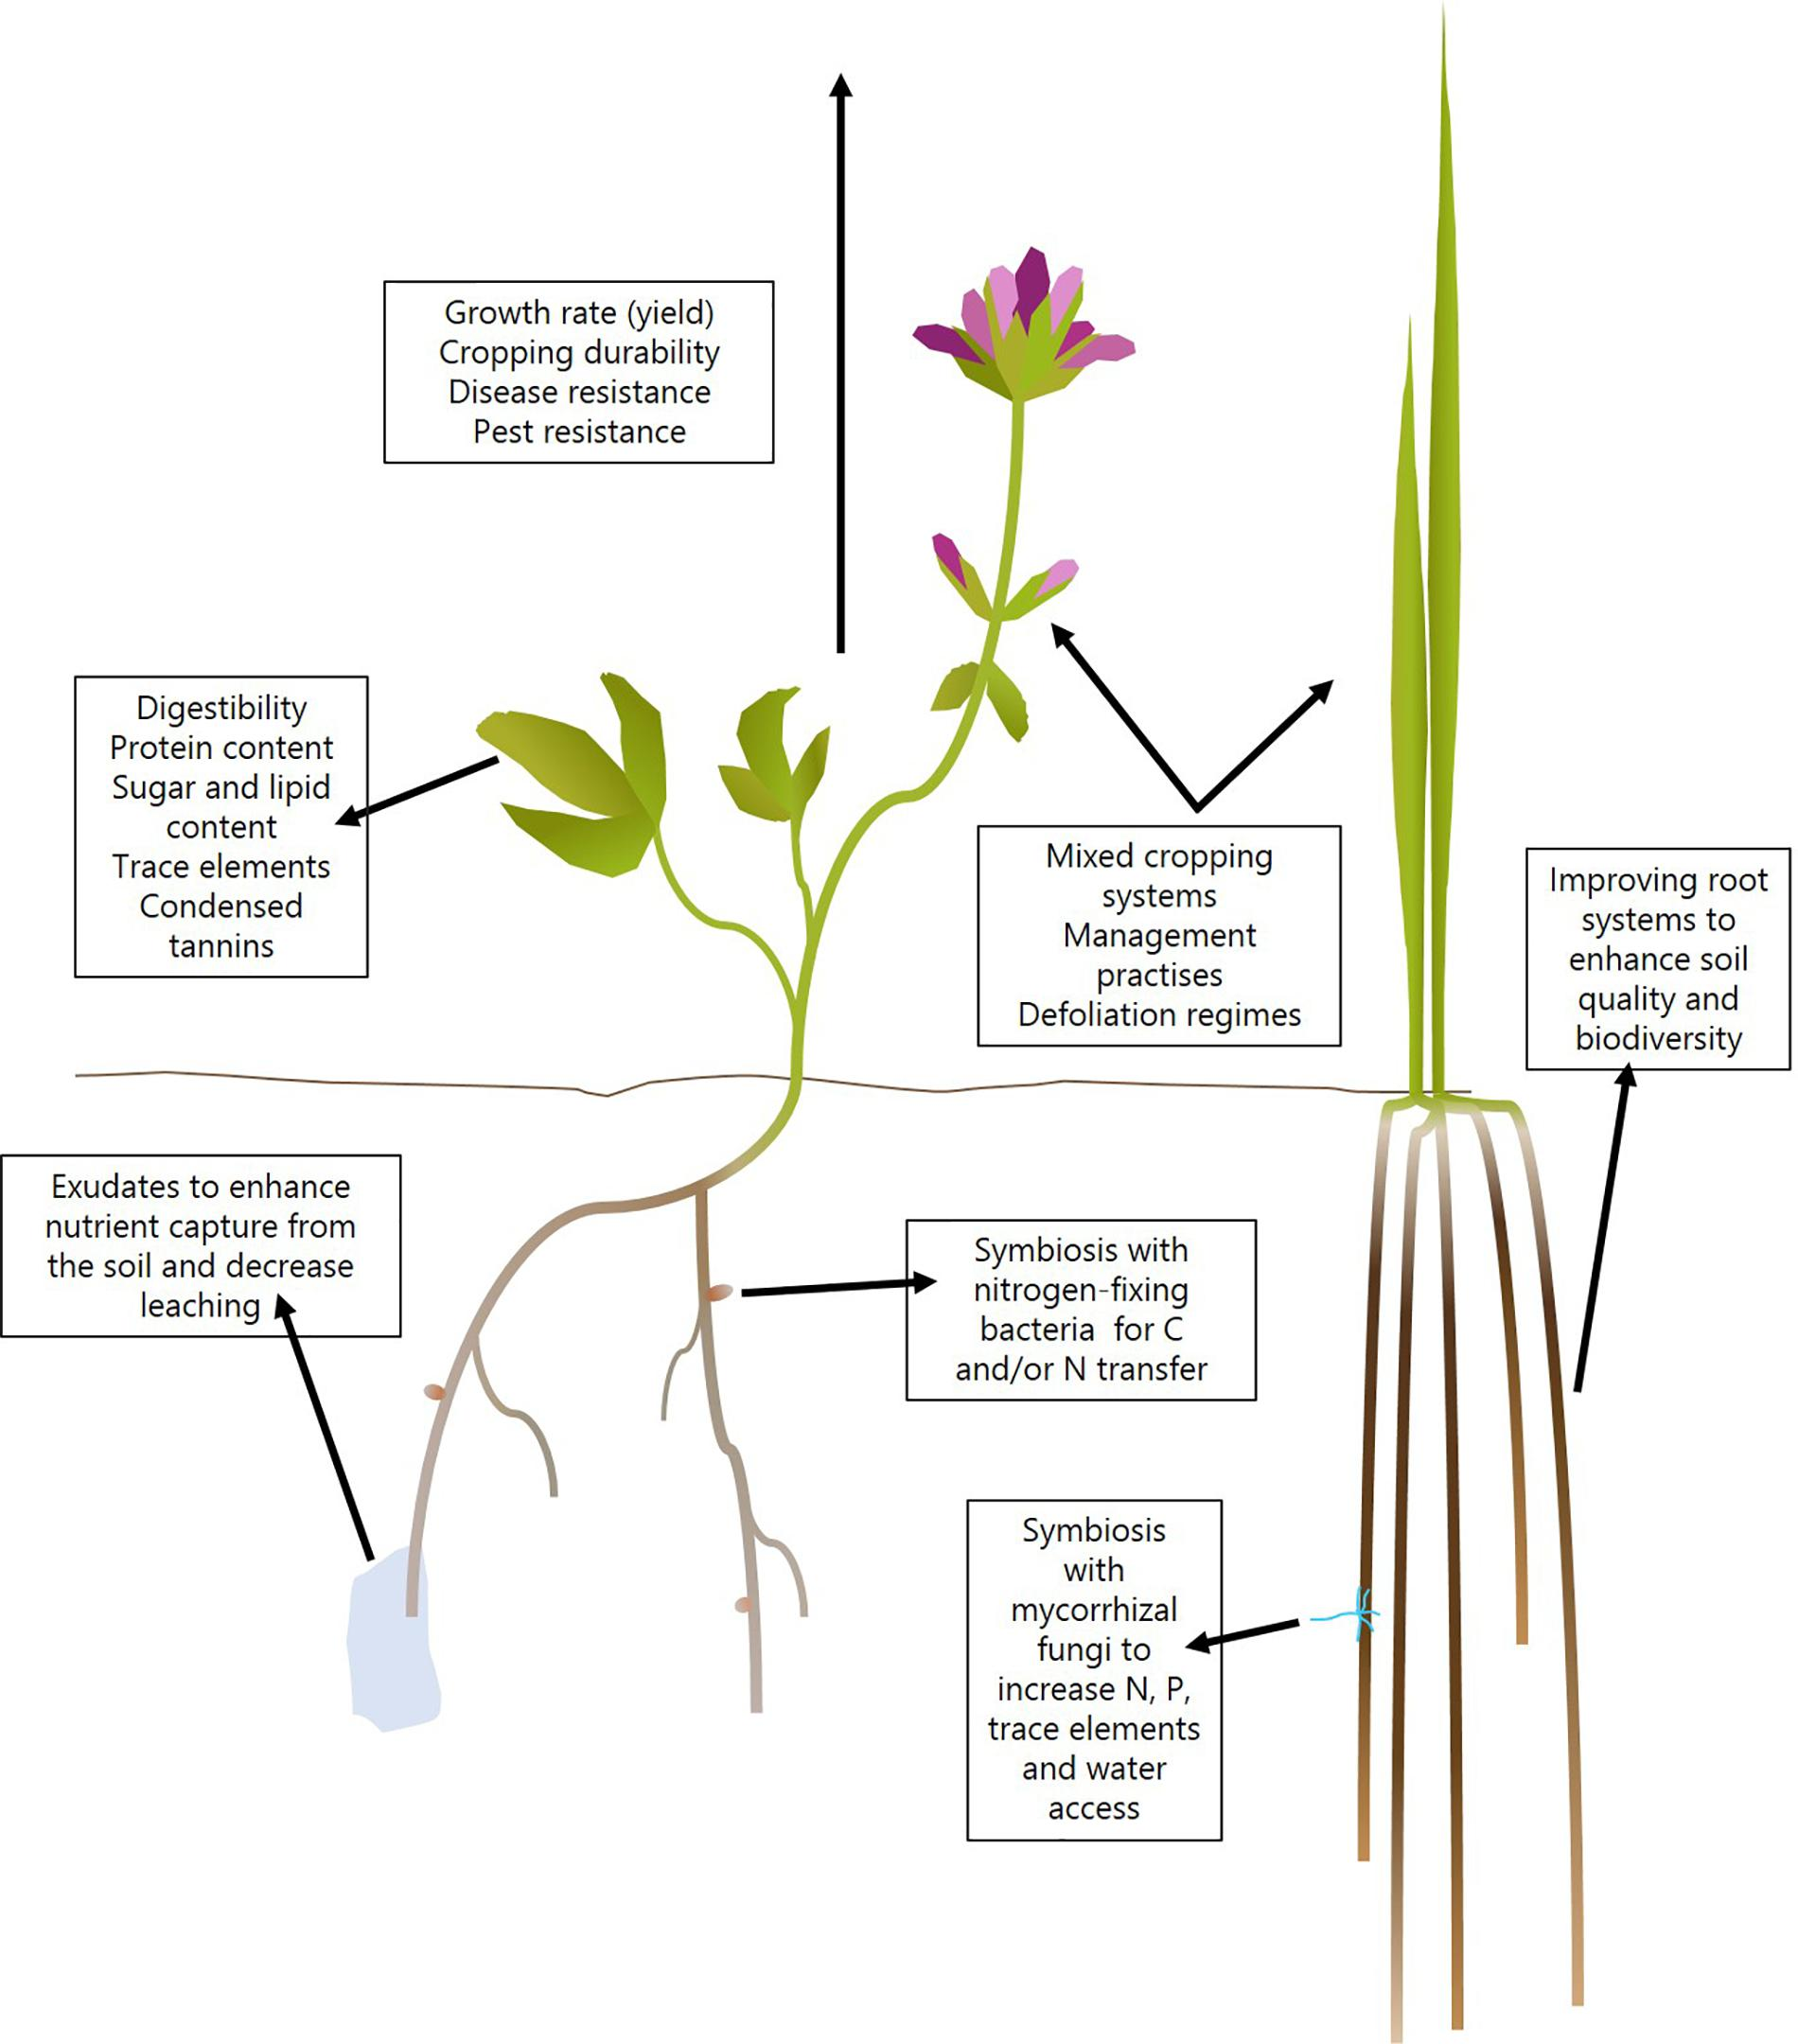 Improvement Of Nutritional Quality Of Plants - Nutrition Pics